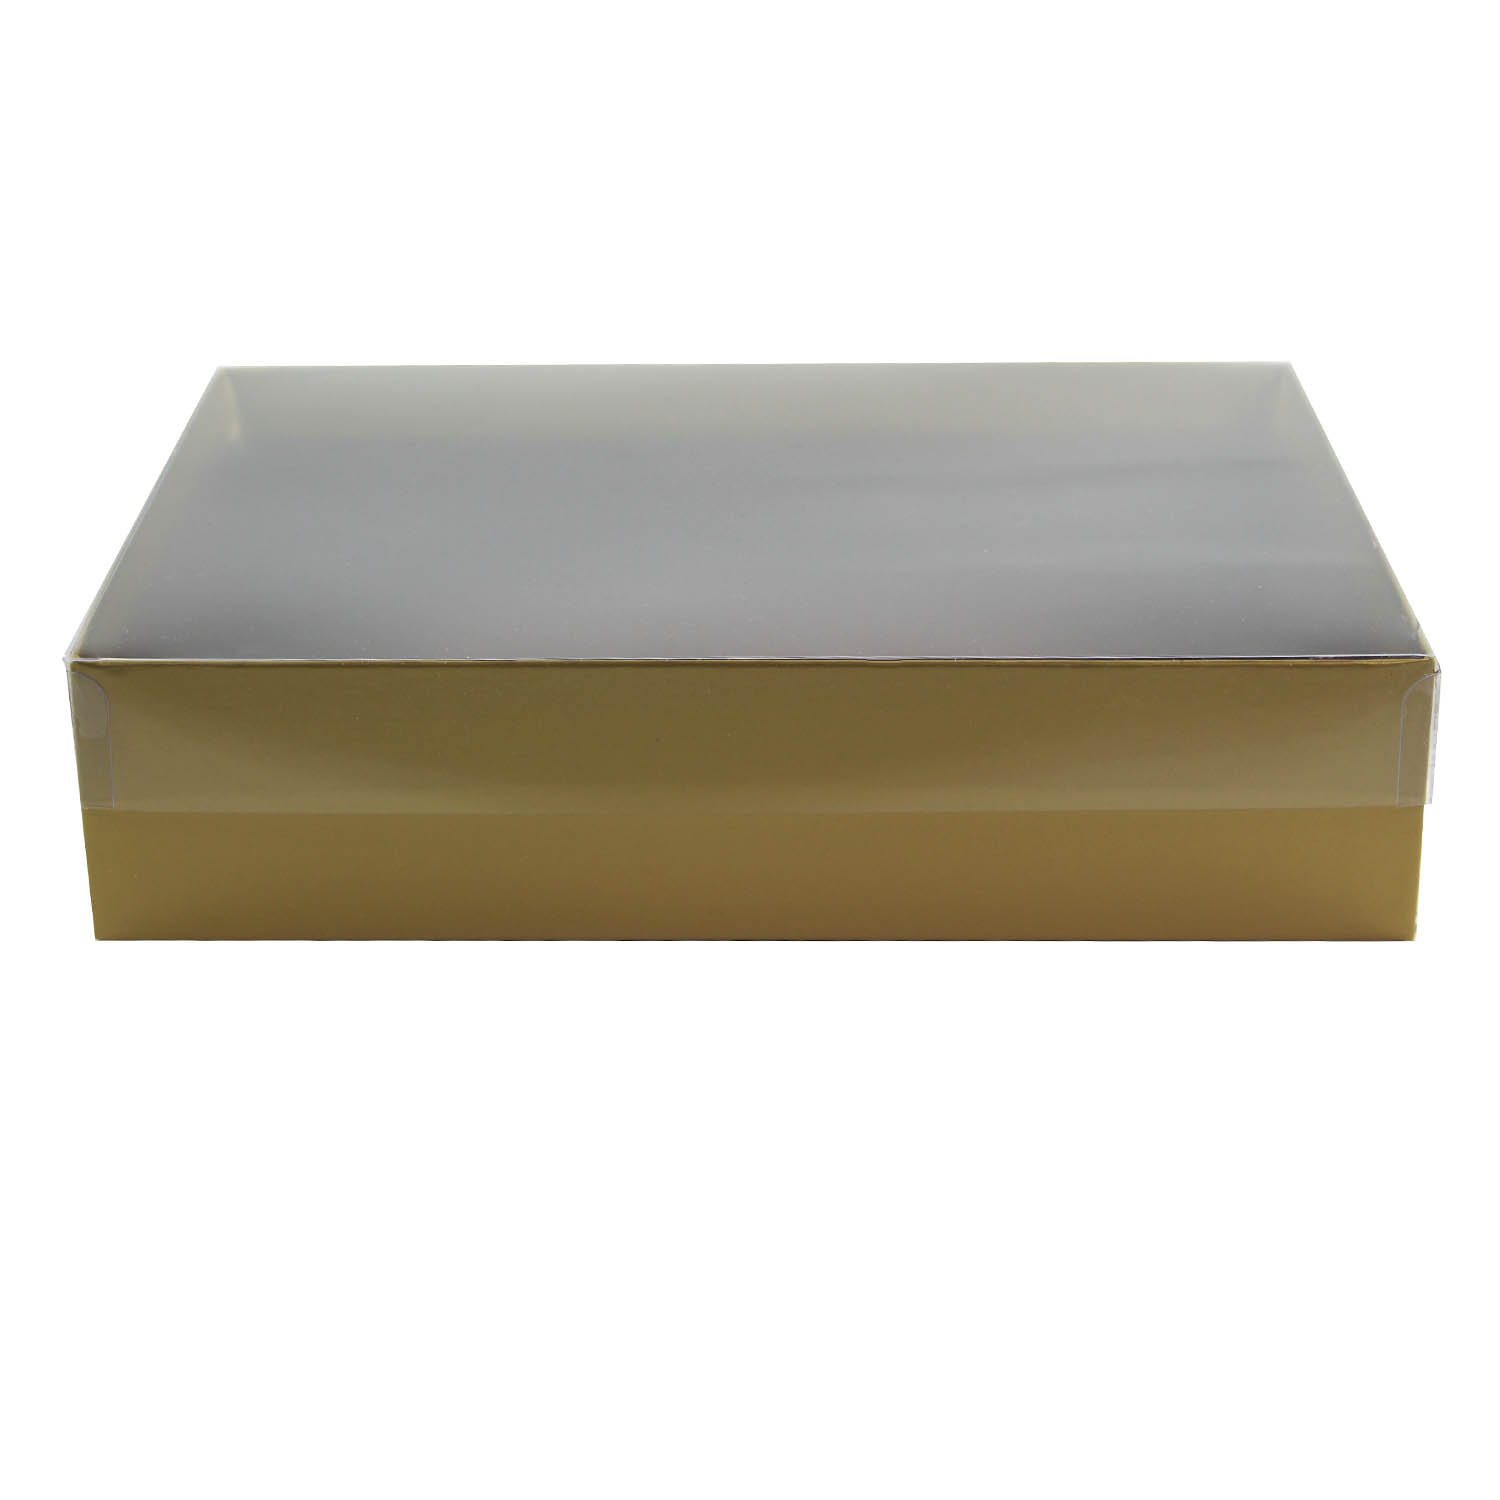 2 lb. Gold Candy Box with Clear Lid